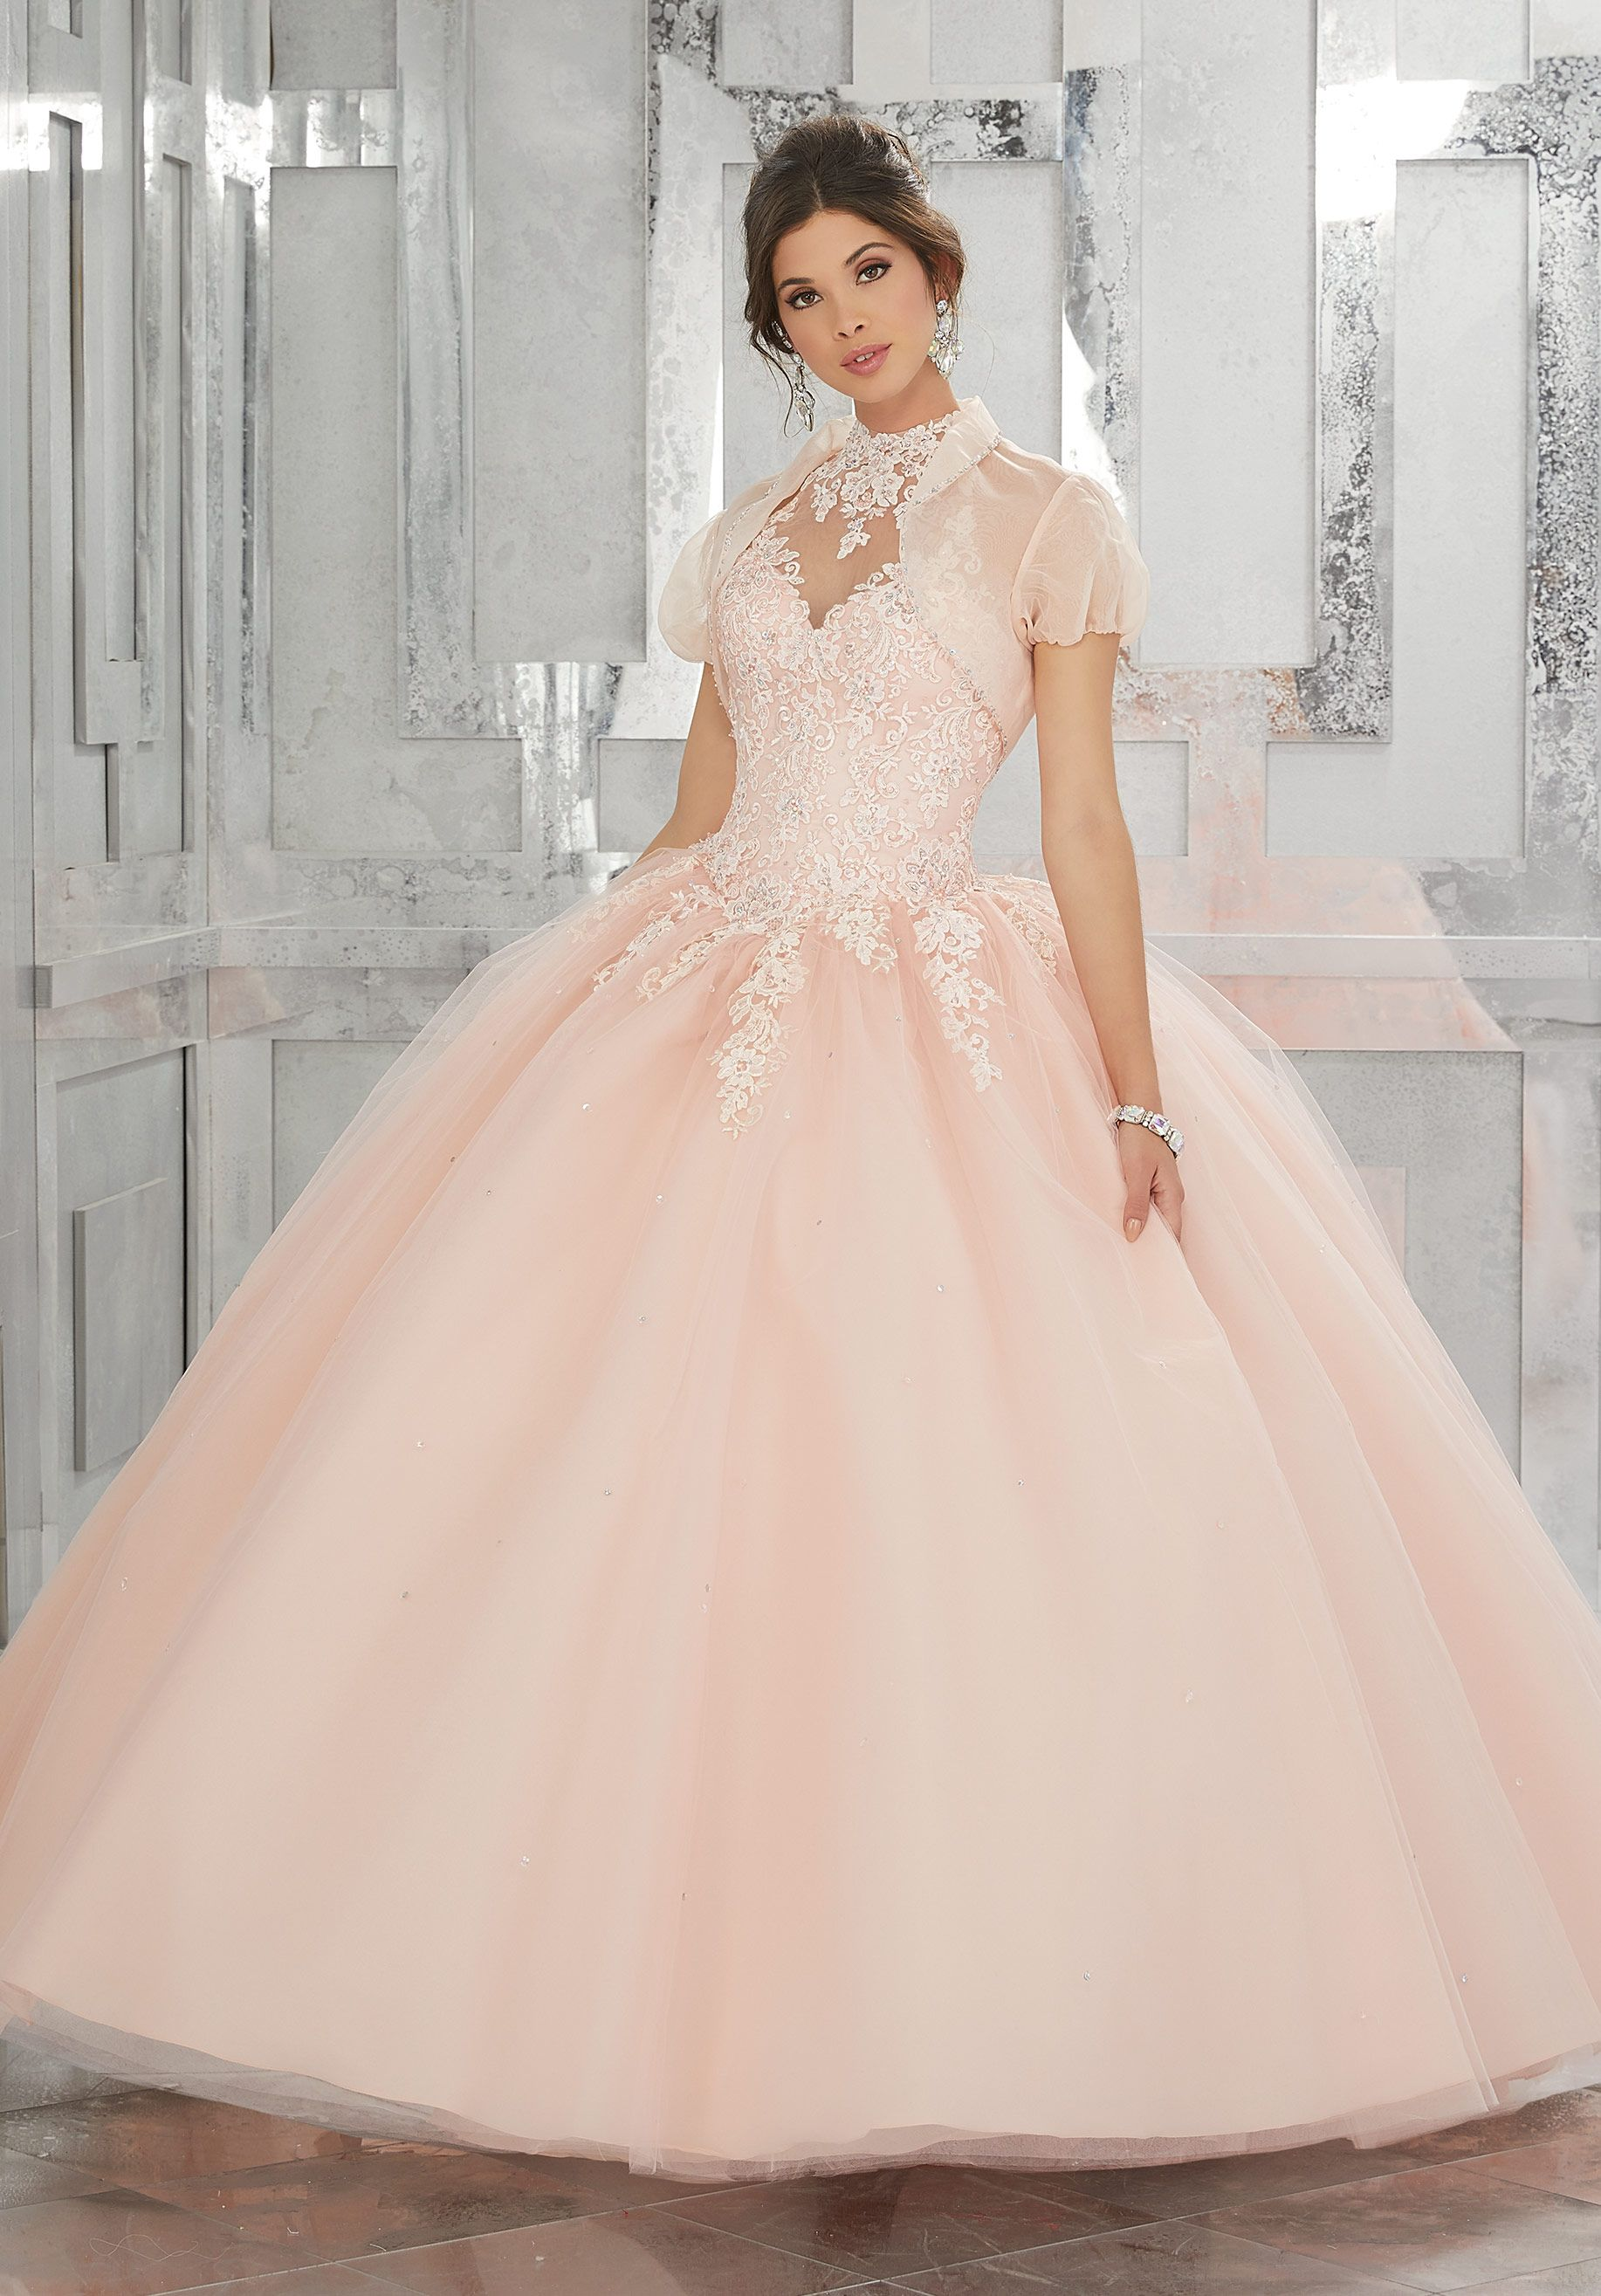 A Full Tulle Skirt And Keyhole Corset Back Complete The Look Matching Bolero Jacket Included Colors Available Blush